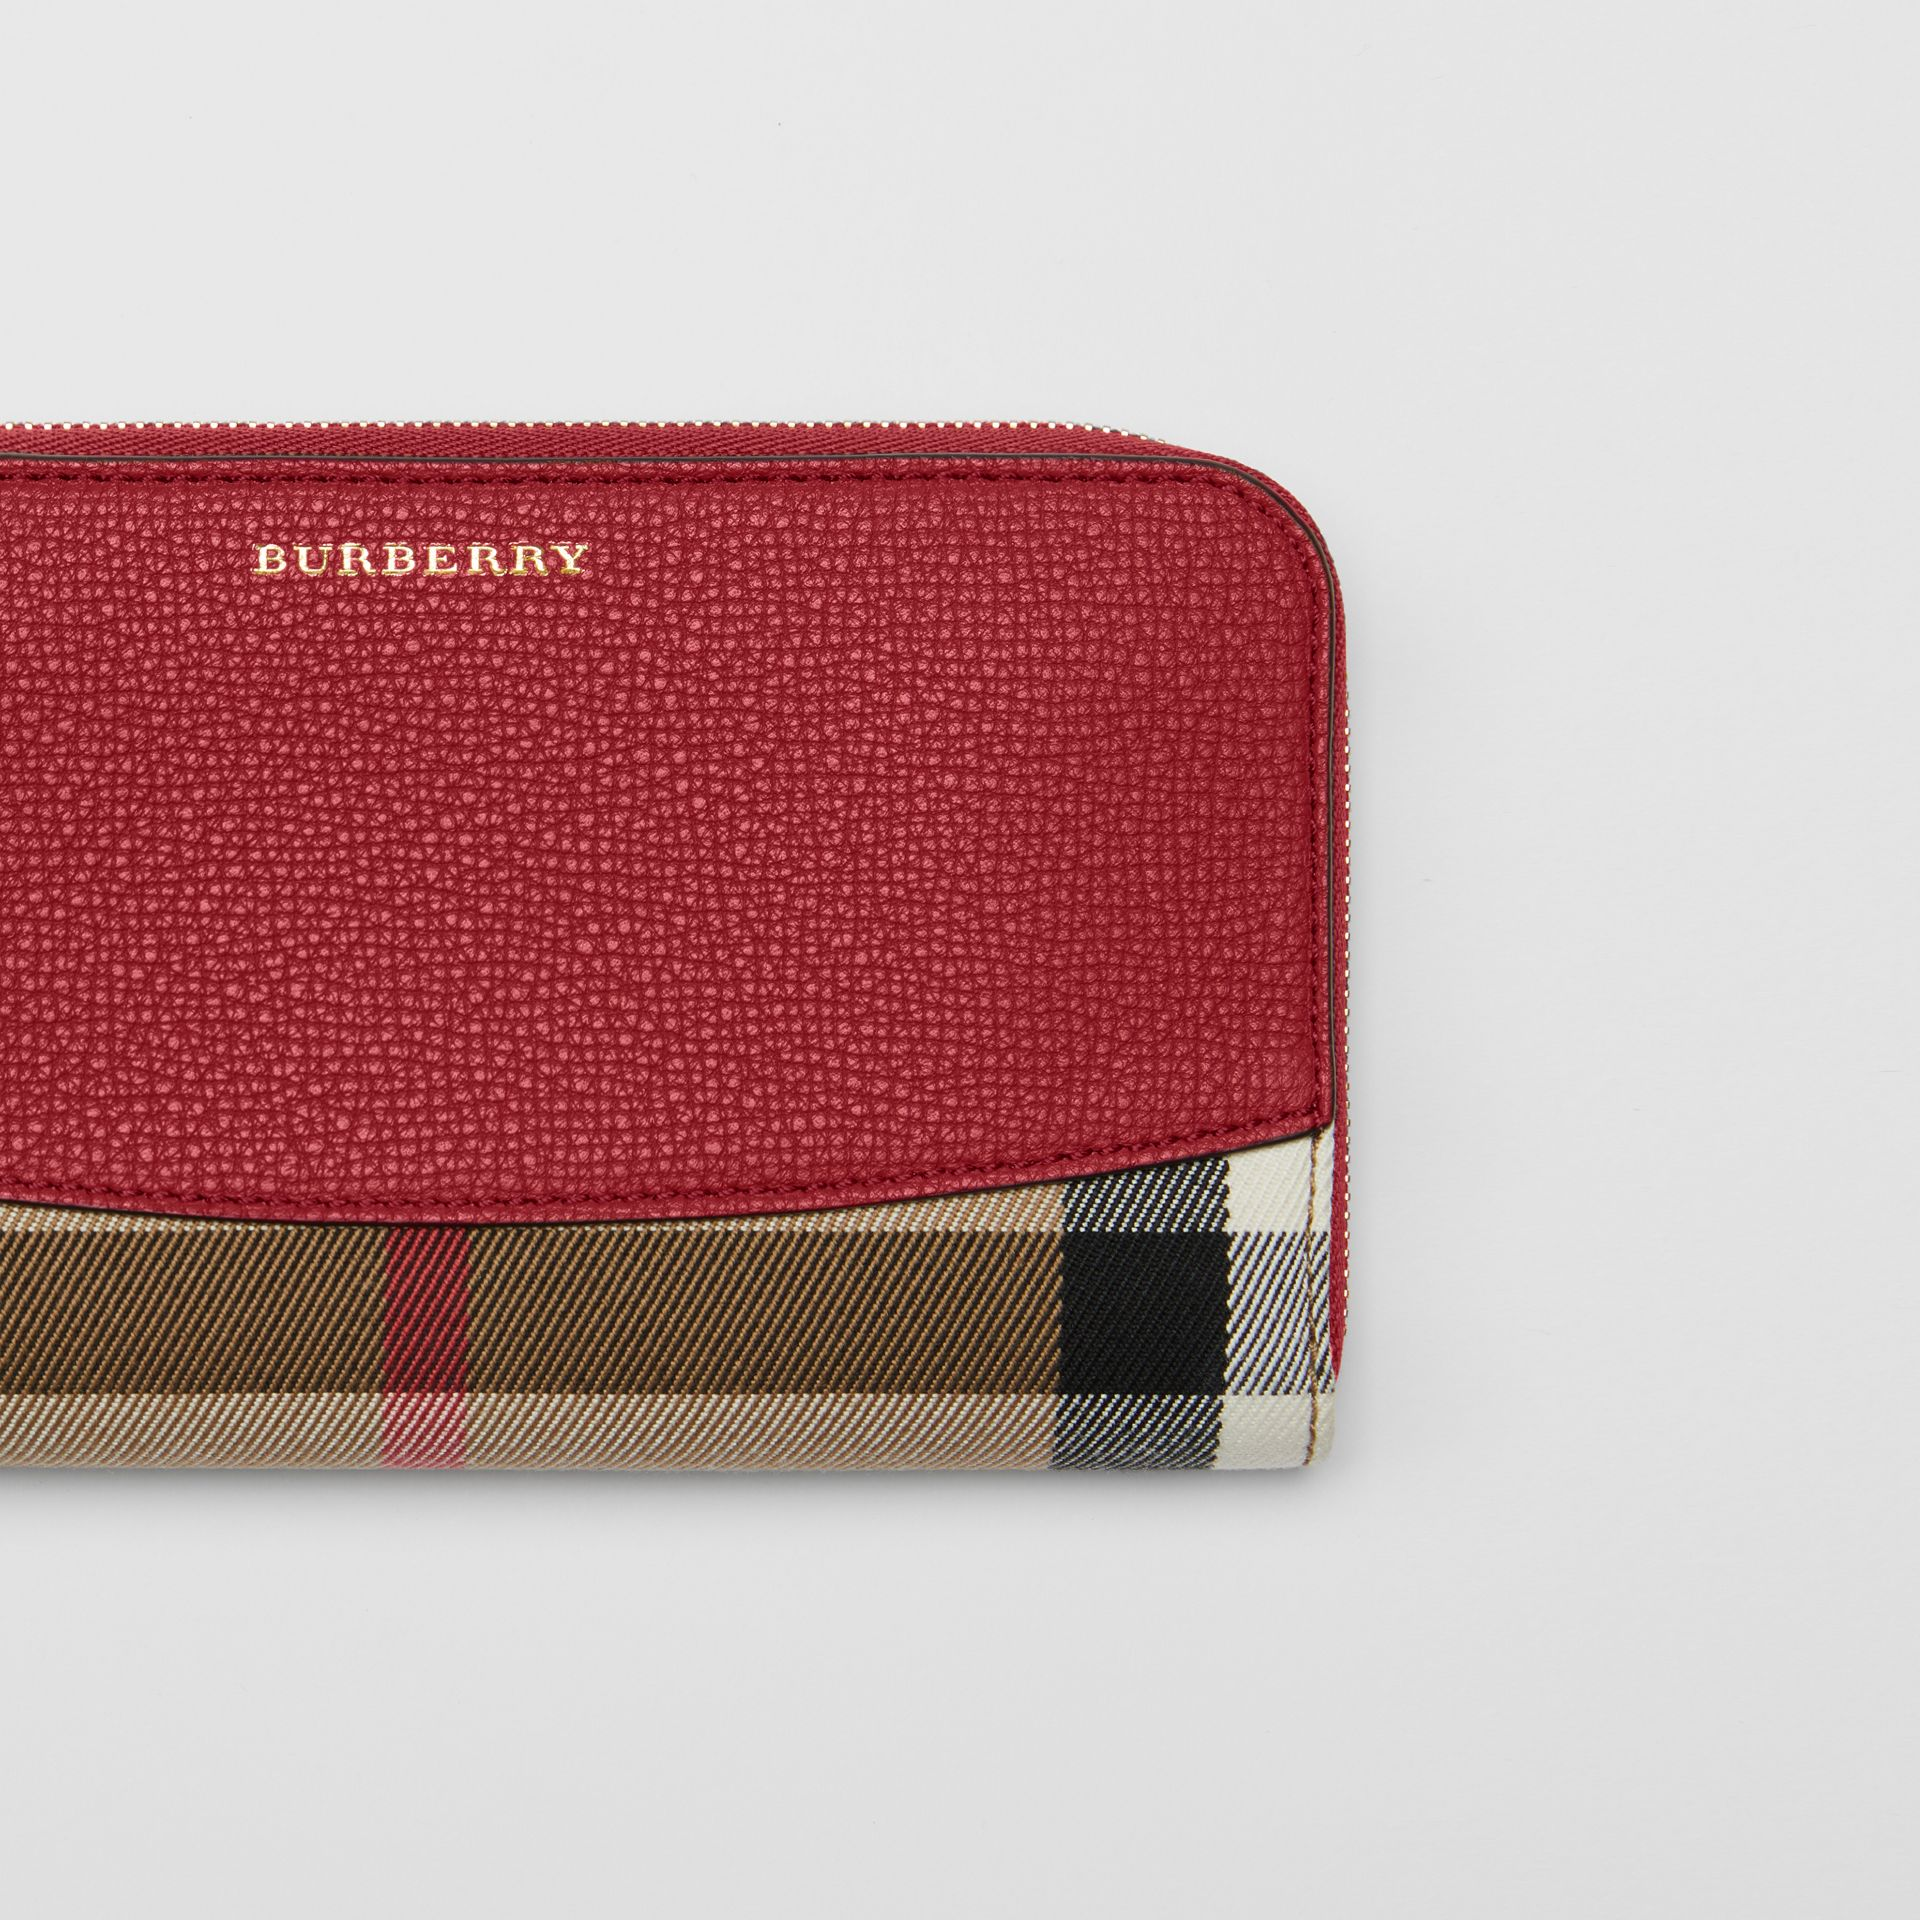 House Check and Leather Ziparound Wallet in Russet Red - Women | Burberry United Kingdom - gallery image 1